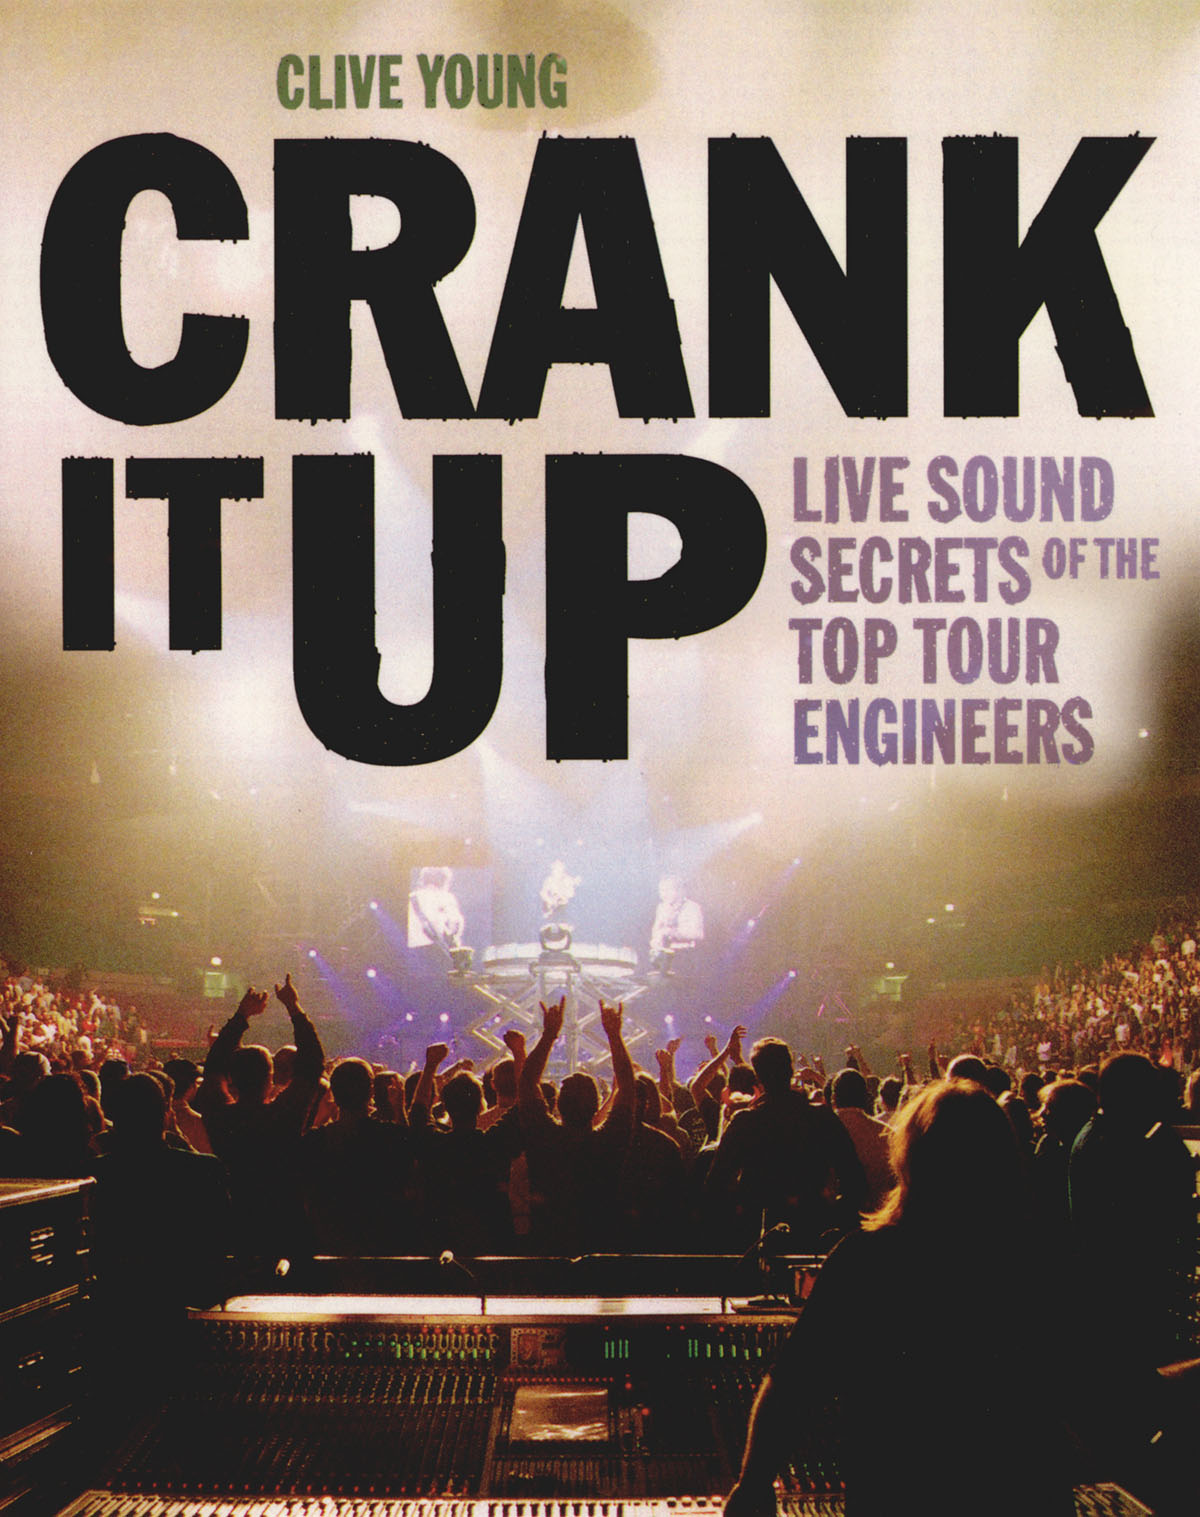 Live Sound Secrets Of The Top Tour Engineers: Reference Books